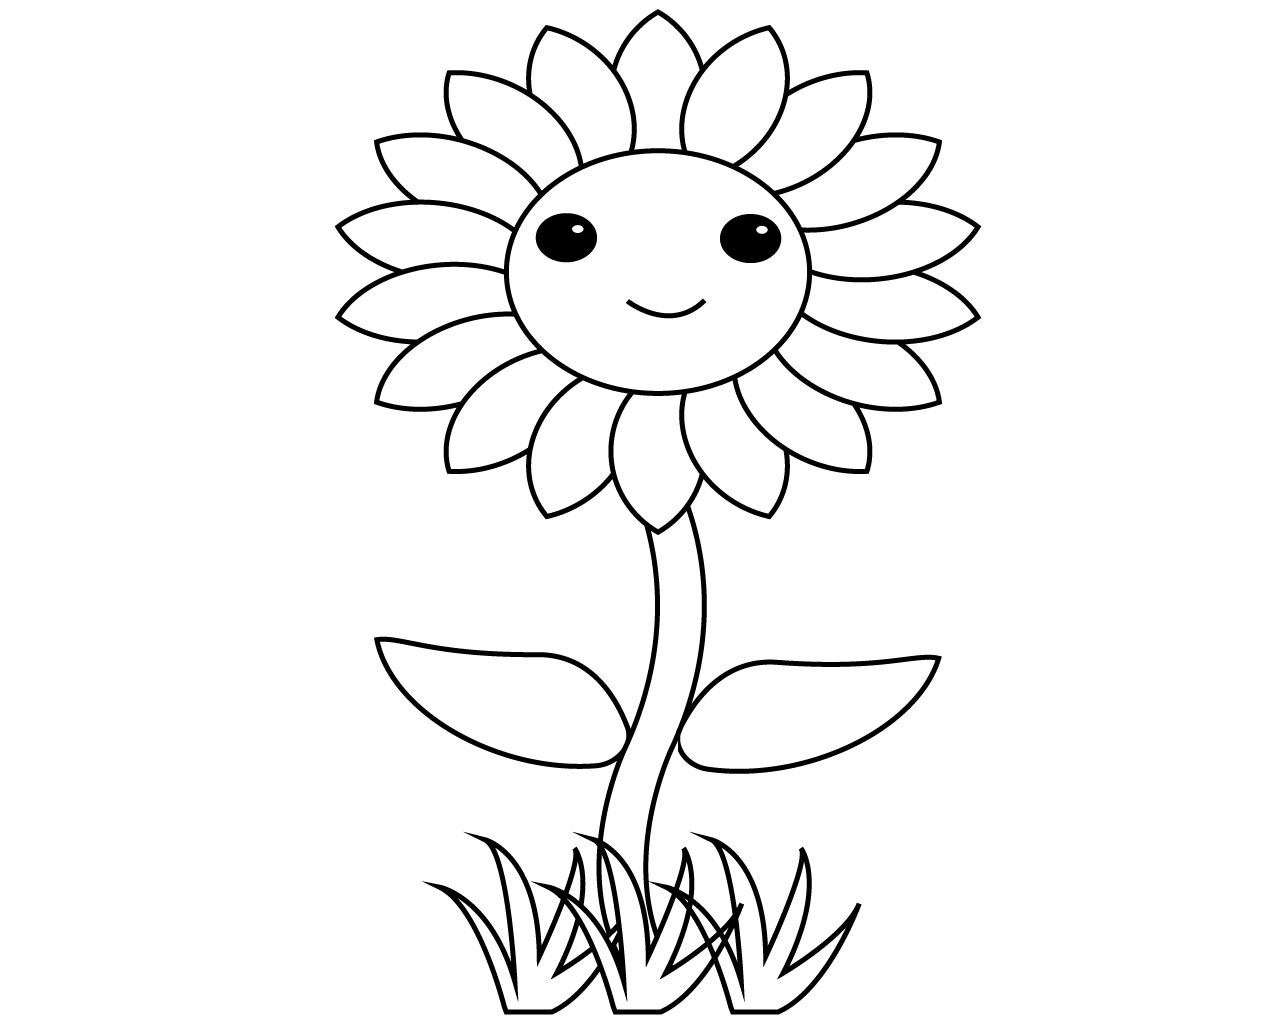 Top 20 Free Printable Strawberry Shortcake Coloring Pages Online